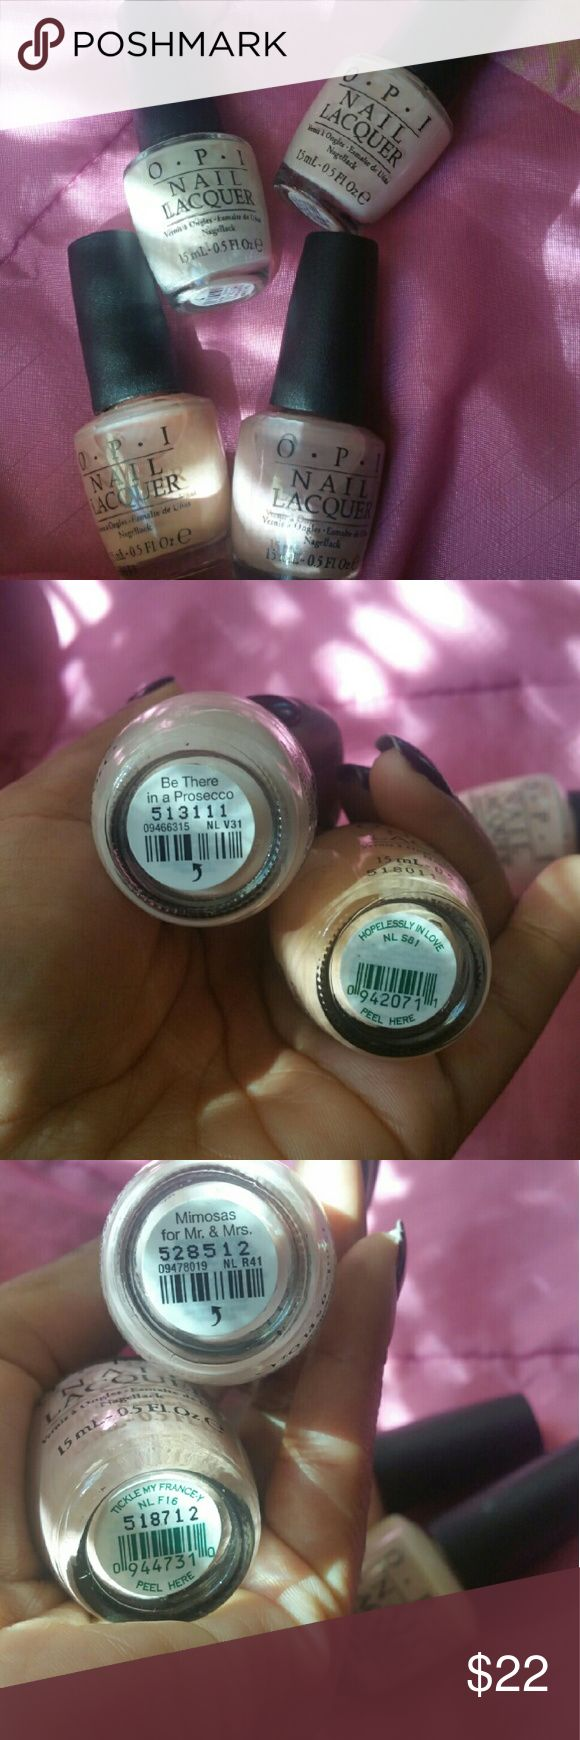 NEW OPI Polishes Pink White Peach Mauve BRAND NEW OPI Polishes Hopelessly in Love, Be There in a Prosecco, Tickle My France-y and Mimosas for Mr. And Mrs.   Reasonable offers considered :) OPI Makeup